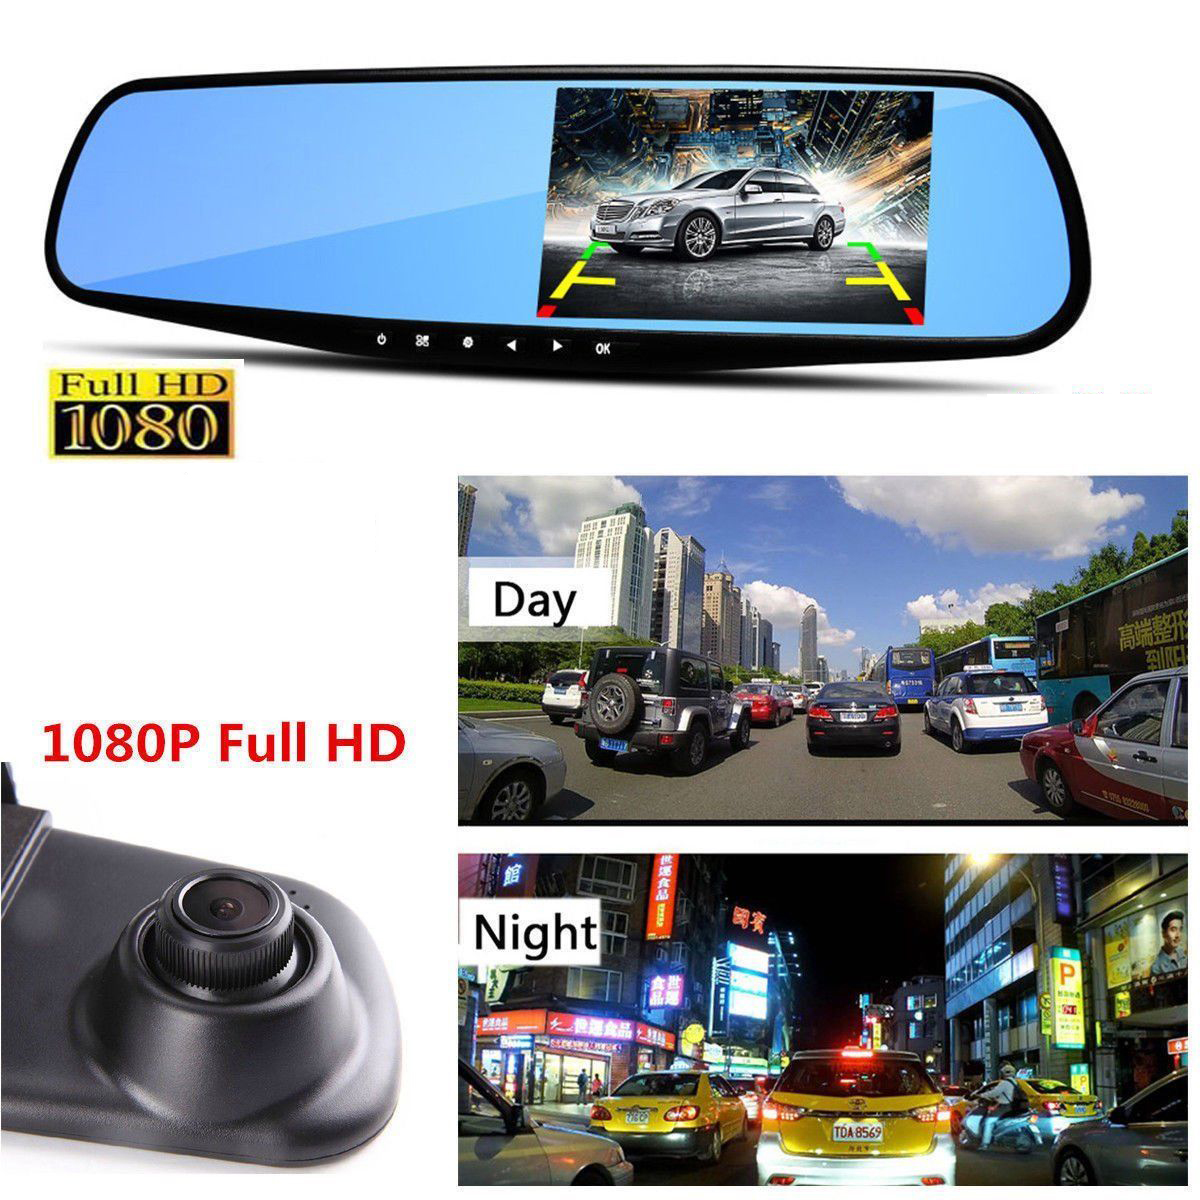 JPEG Full HD 1080P 3.5 Video Recorder Dash Cam Rearview Mirror Car Camera DVR US